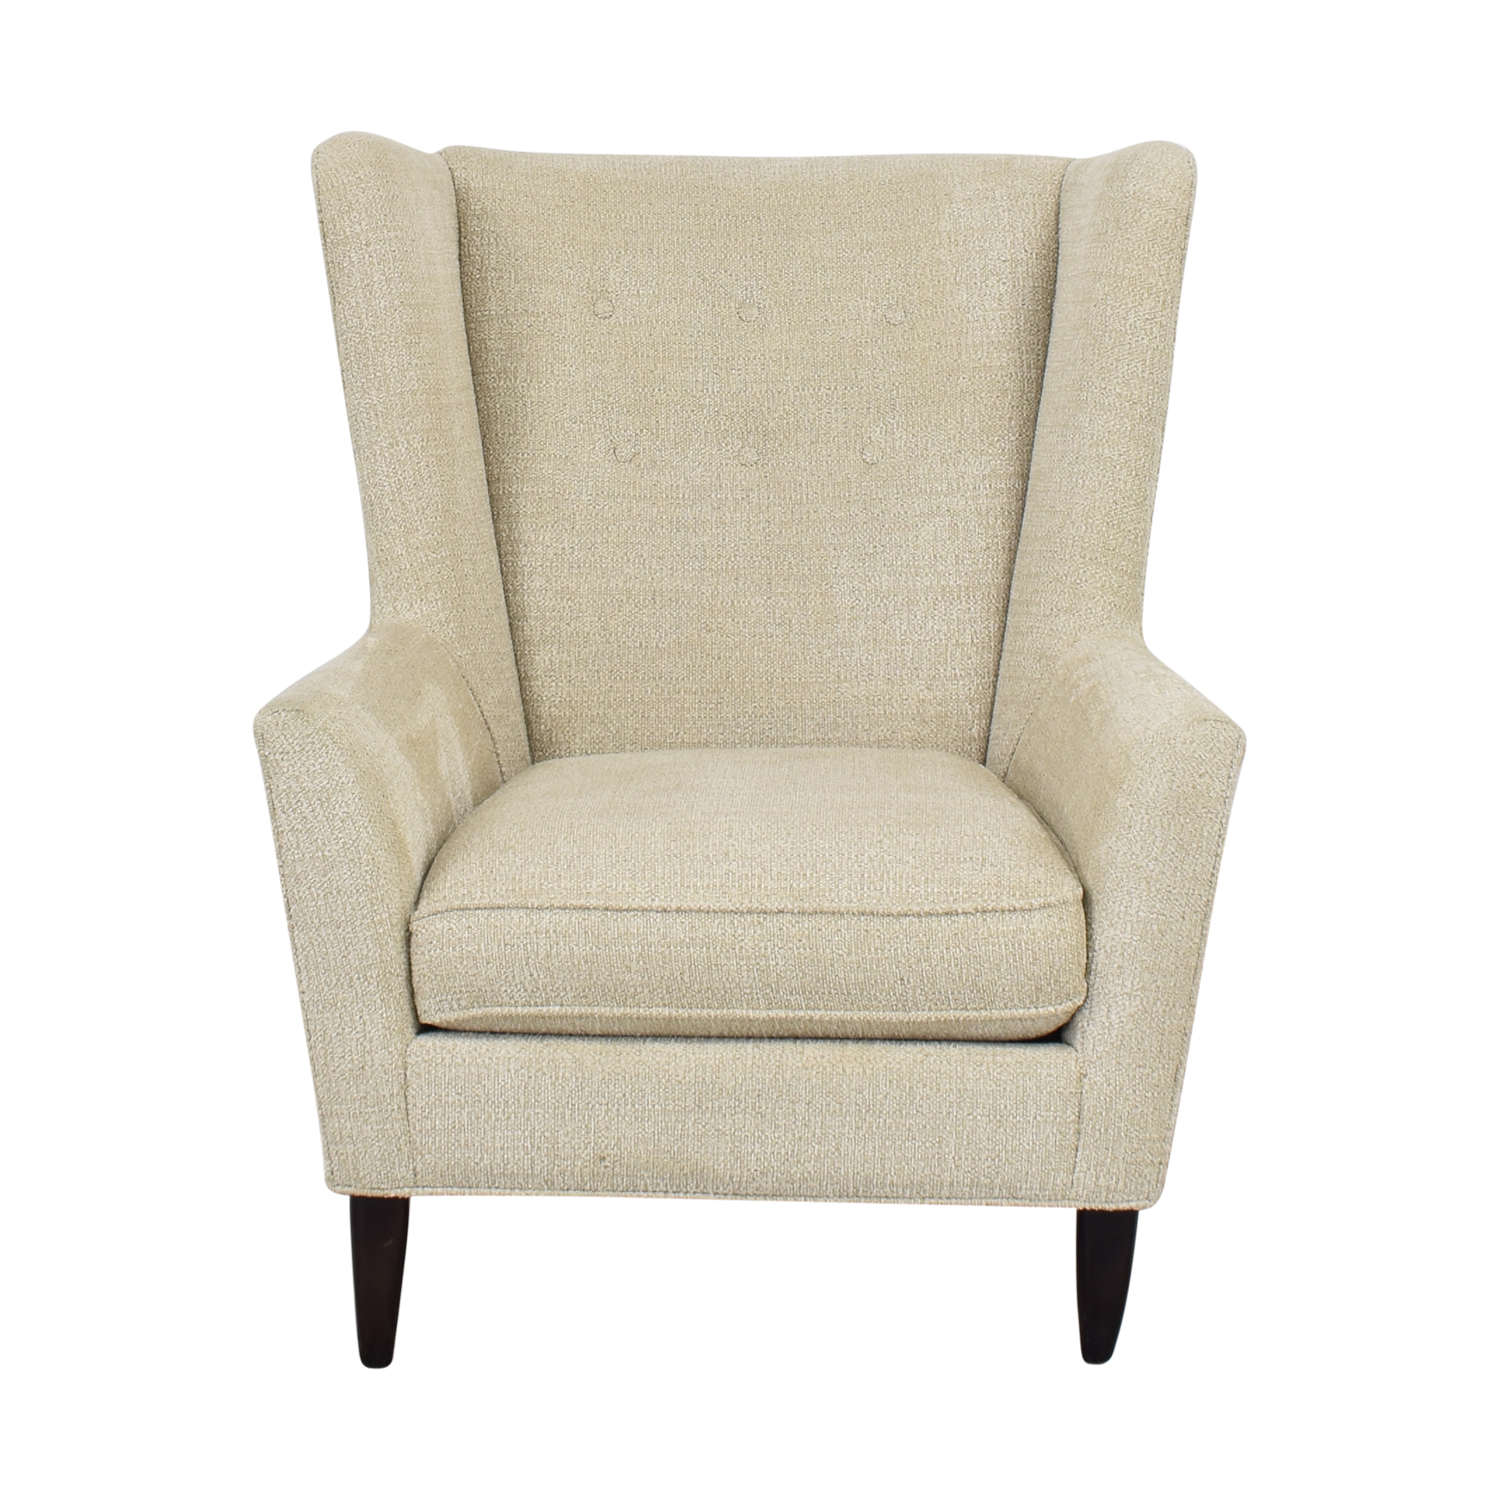 shop DwellStudio Porter Armchair DwellStudio Chairs